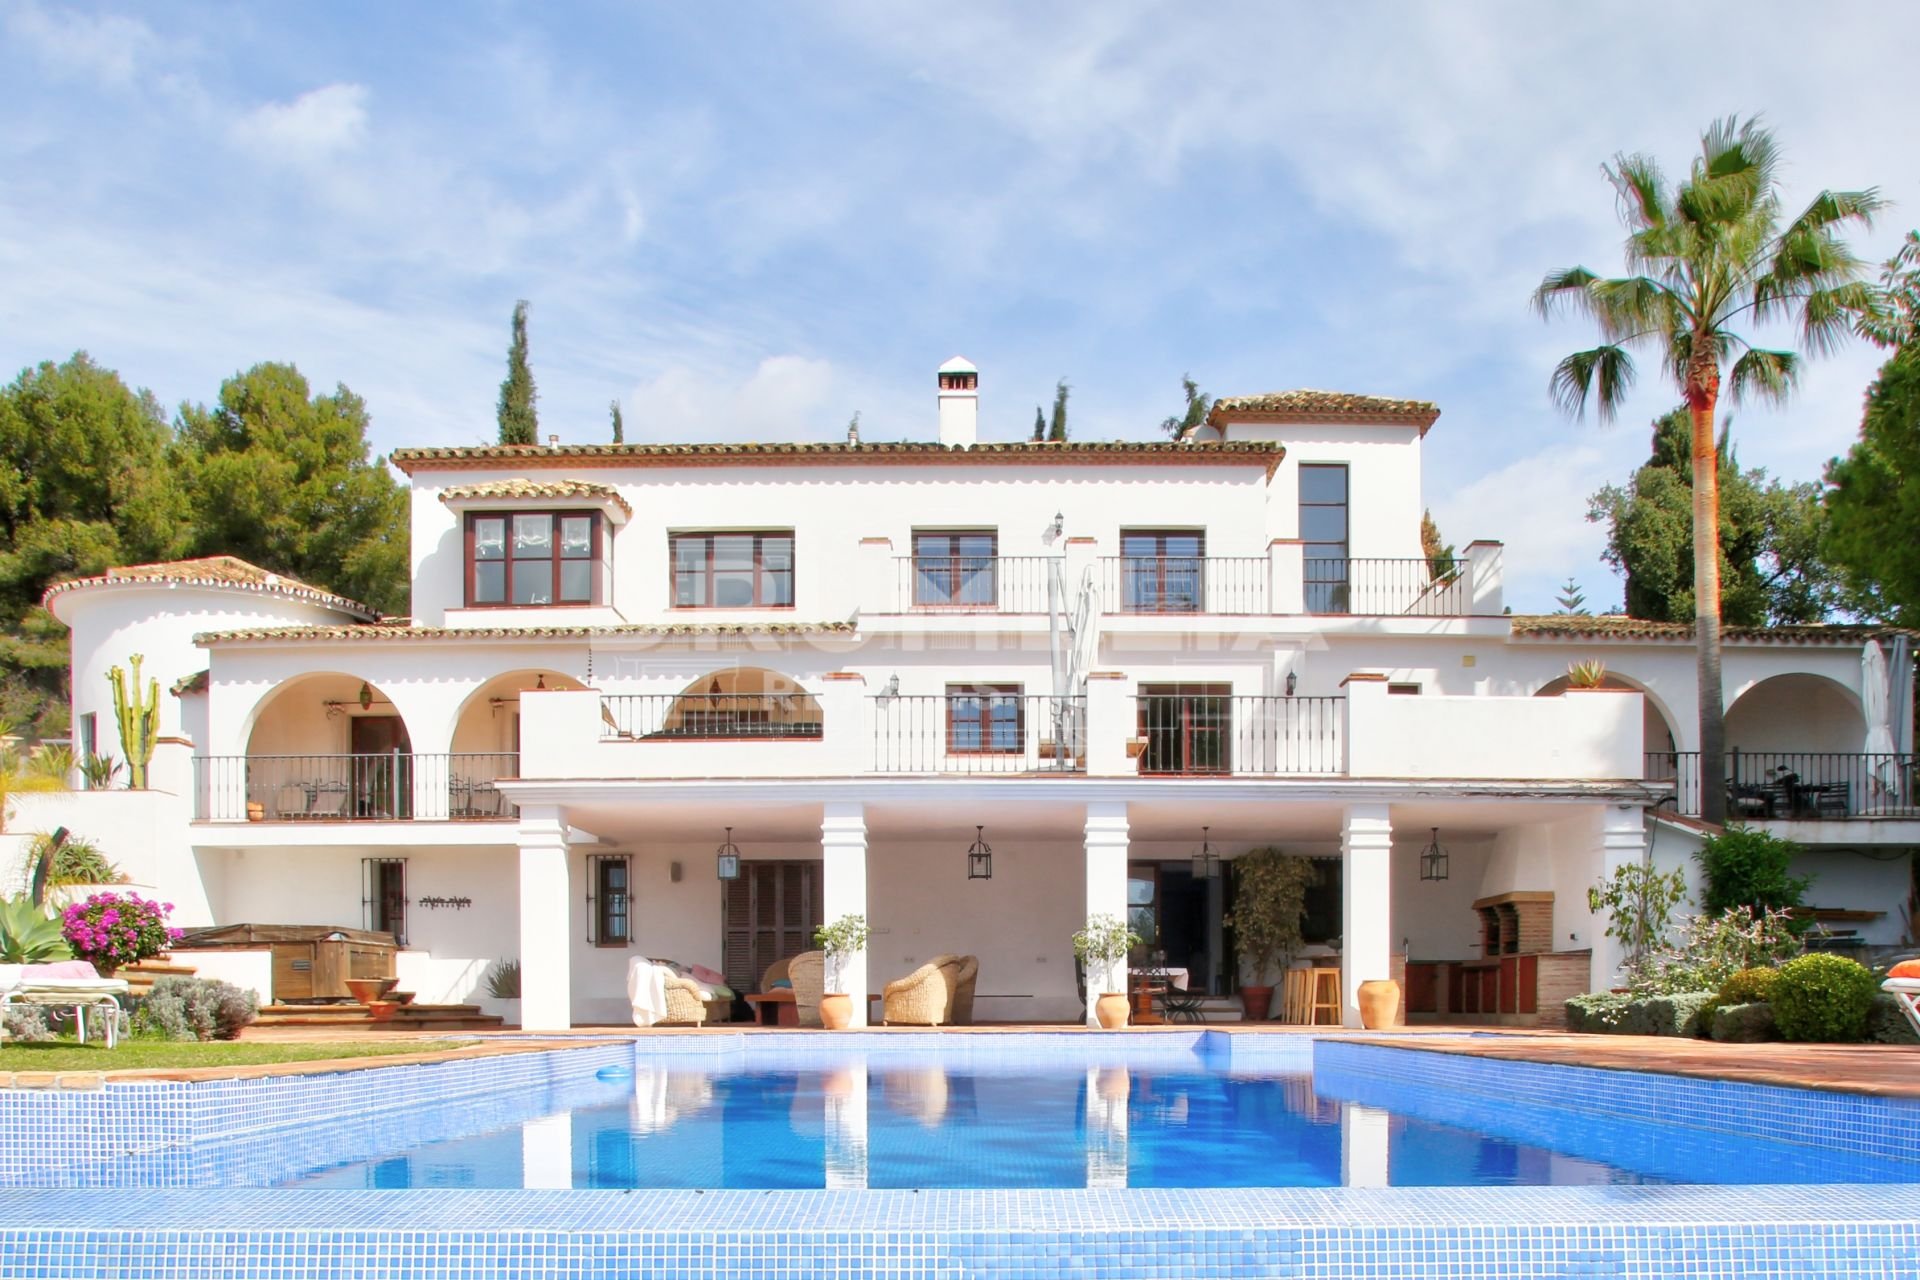 Marbella Golden Mile, Elegant Luxury Mediterranean Villa, La Carolina, Marbella Golden Mile (Marbella)